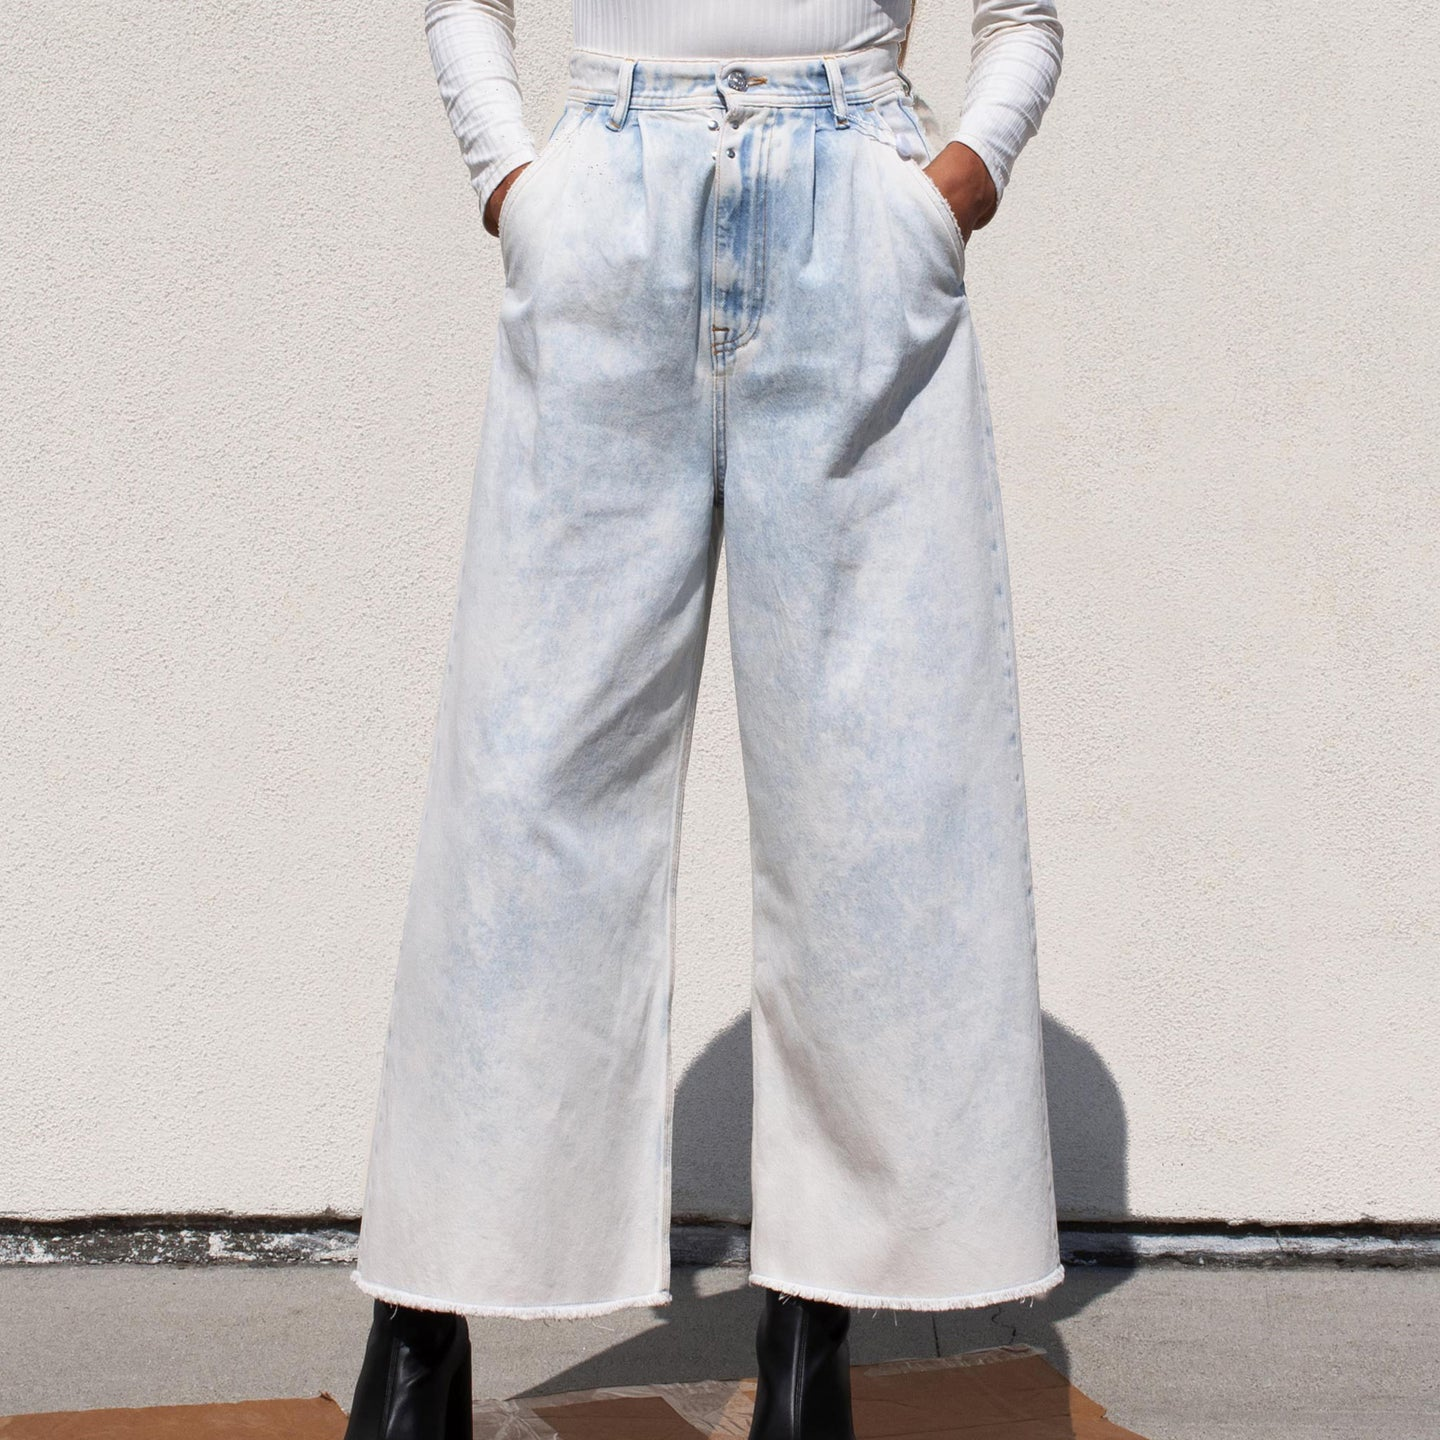 MM6 - Wide-leg Jeans, front view, available at LCD.